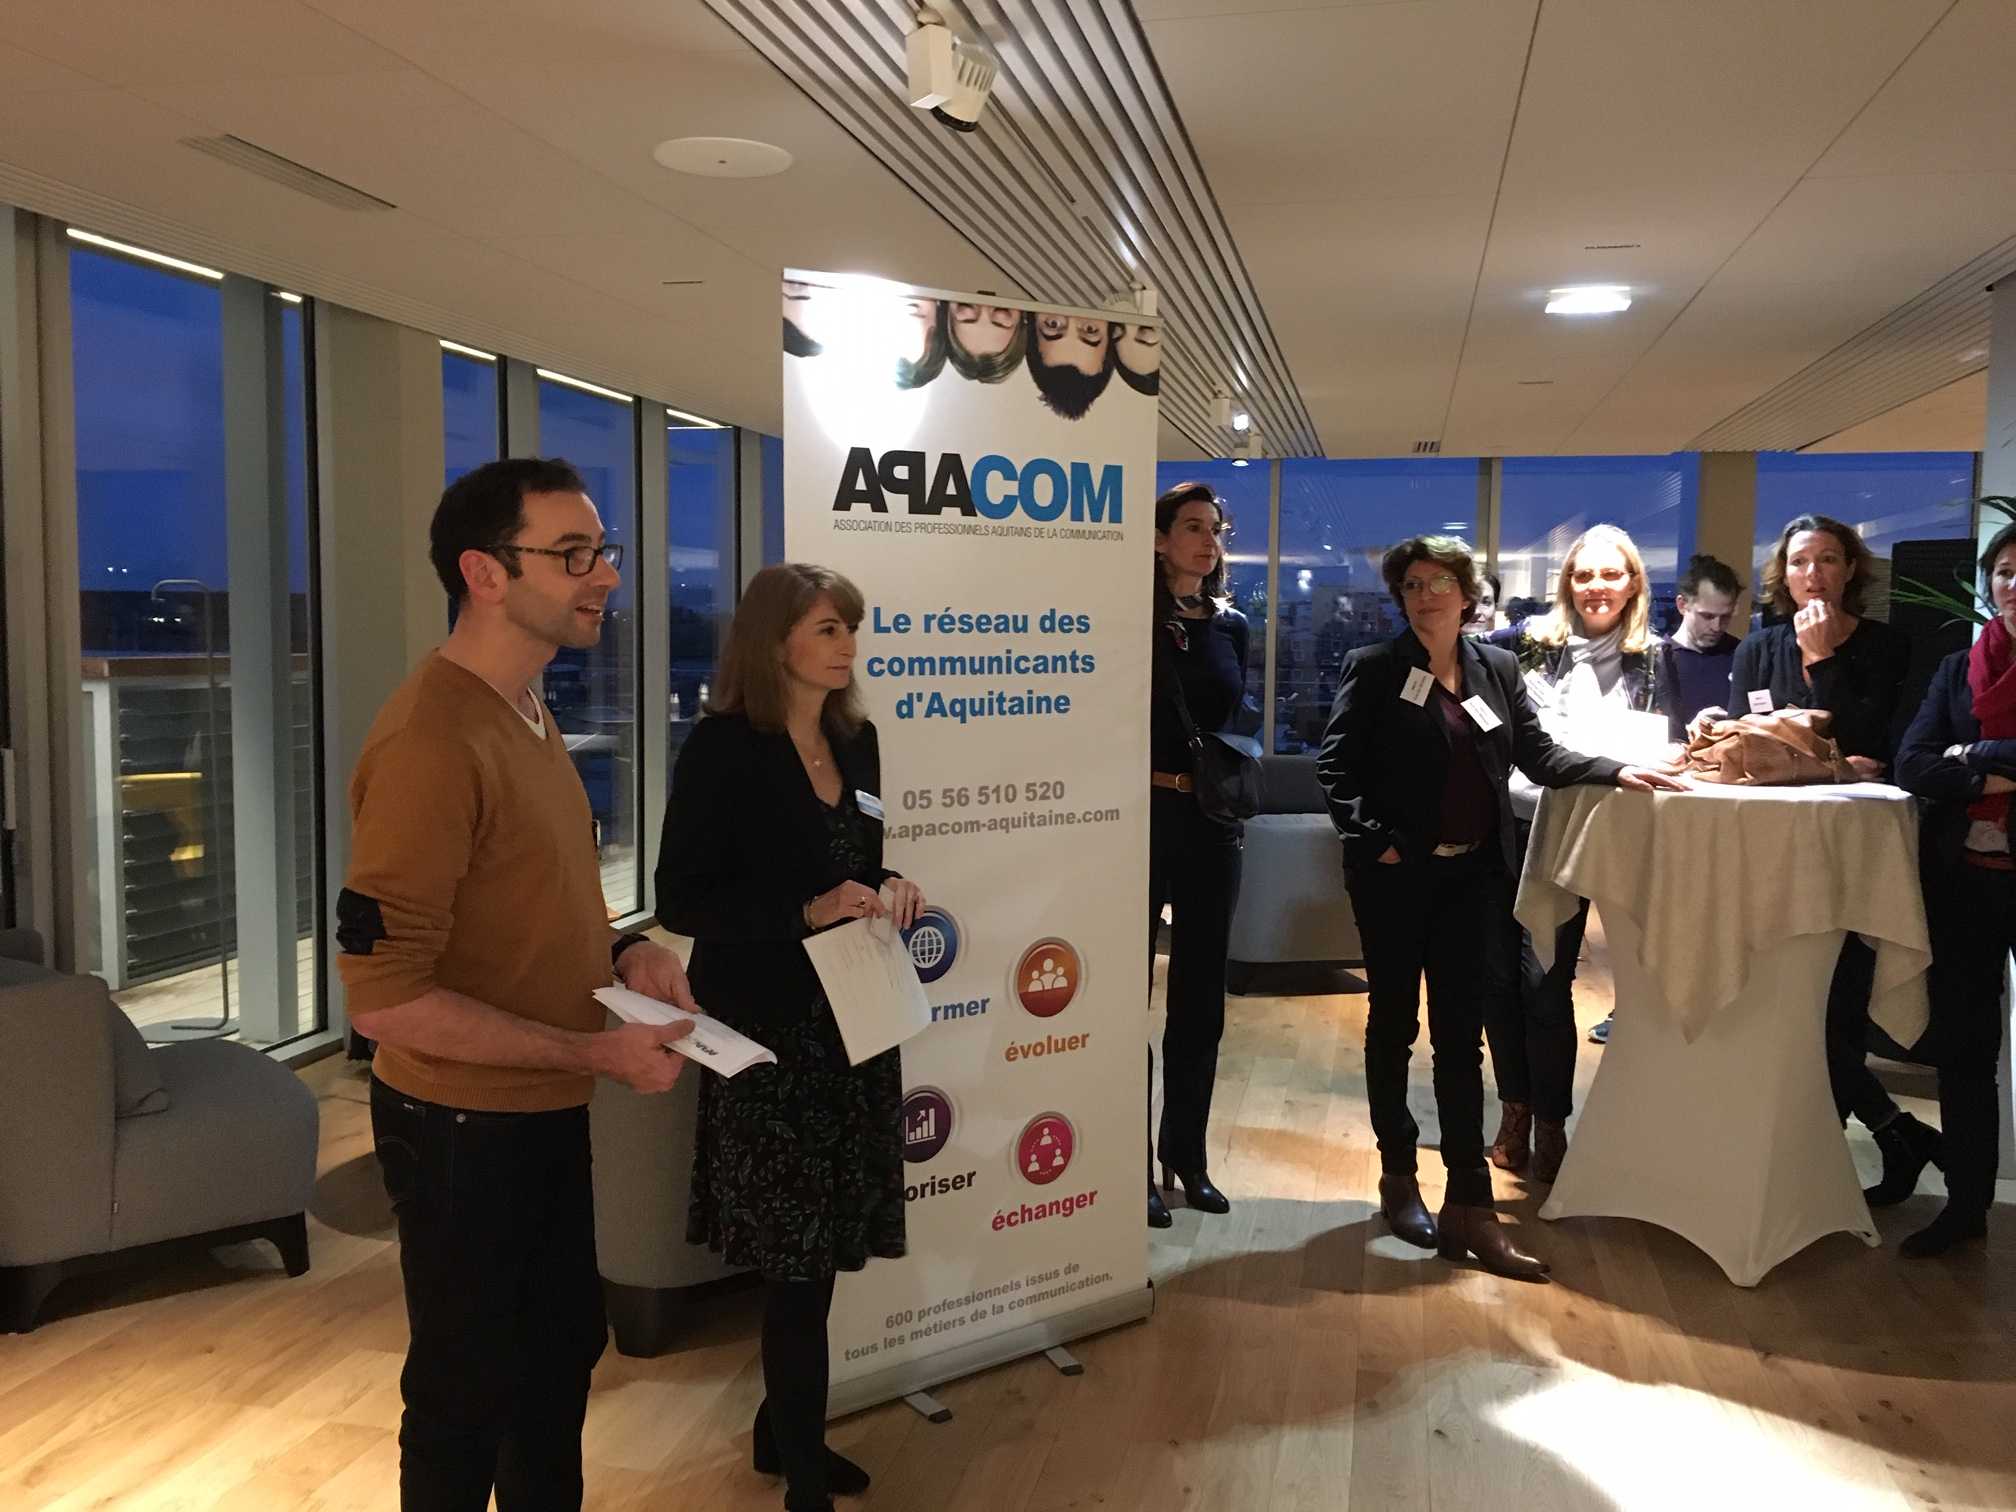 Apacom communication bordeaux